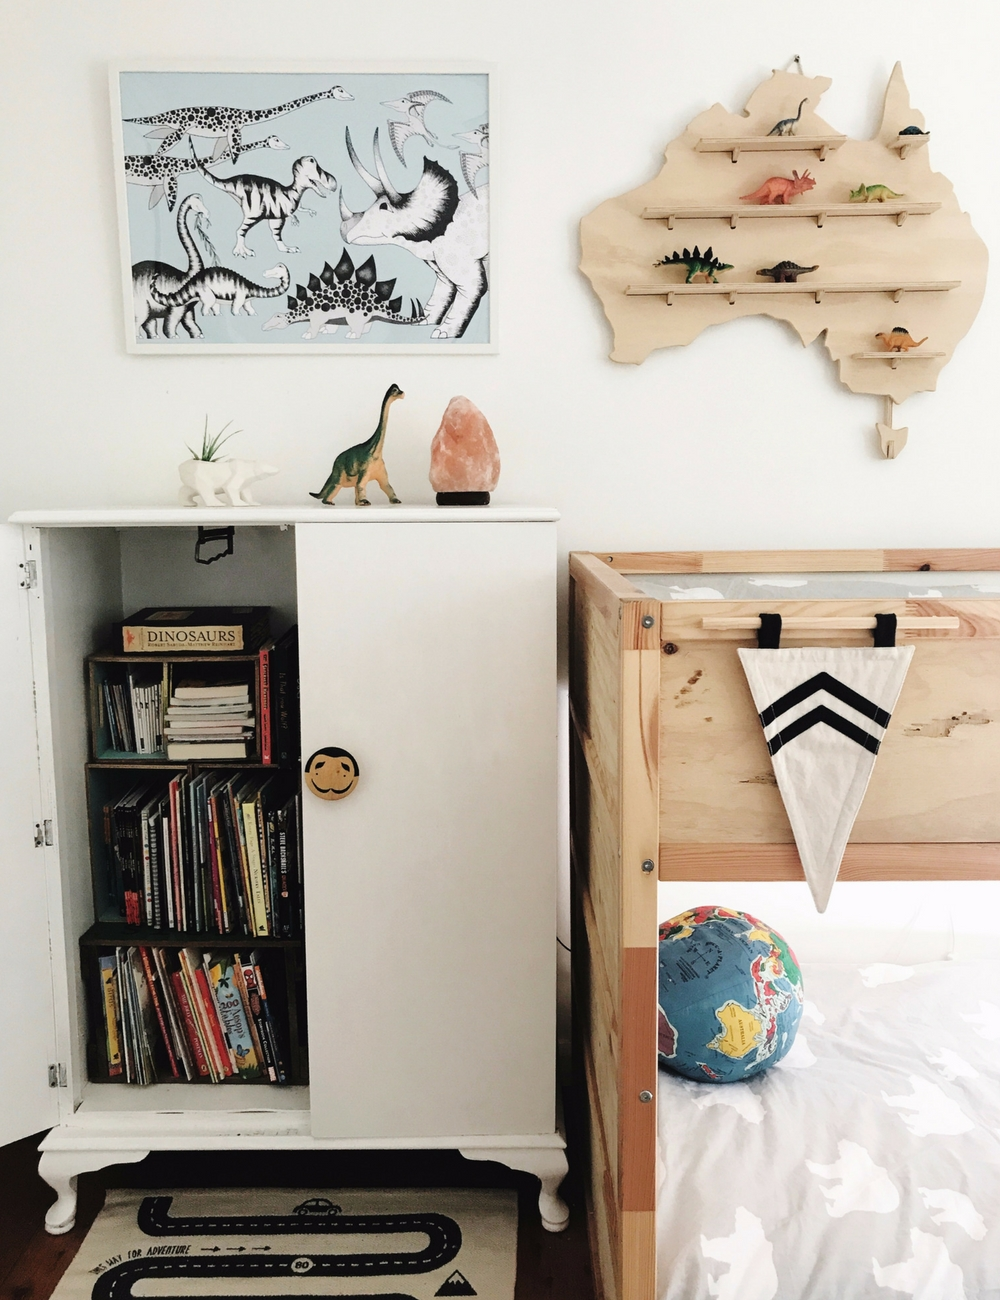 Vintage wardrobe, kids room, storage ideas